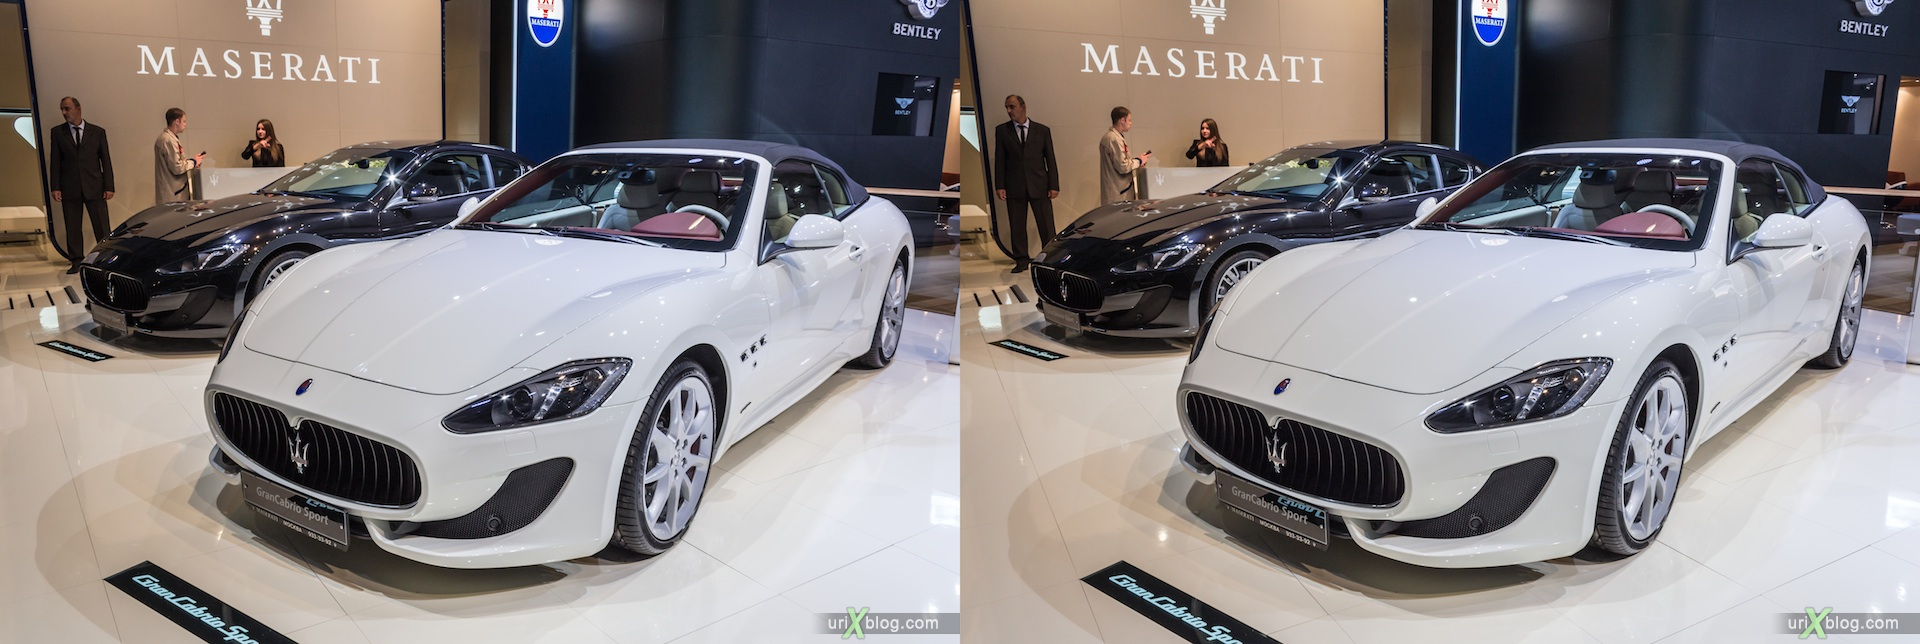 2012, Maserati GranCabrio Sport, Moscow International Automobile Salon, auto show, 3D, stereo pair, cross-eyed, crossview